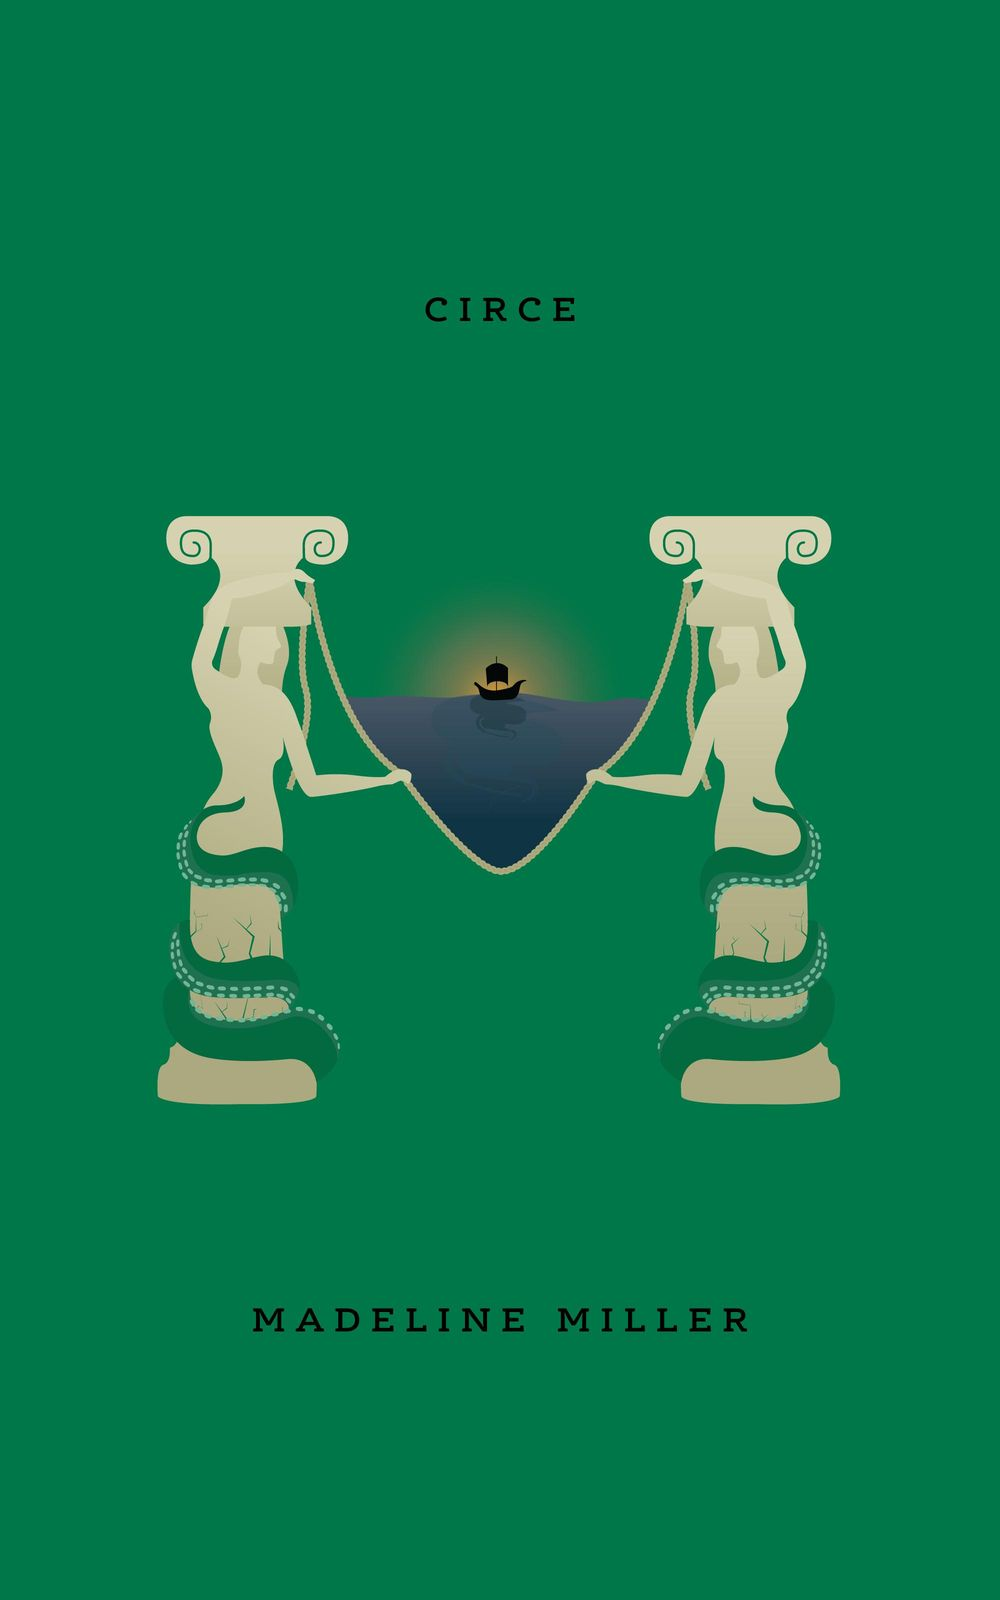 Circe by Madeline Miller - image 2 - student project